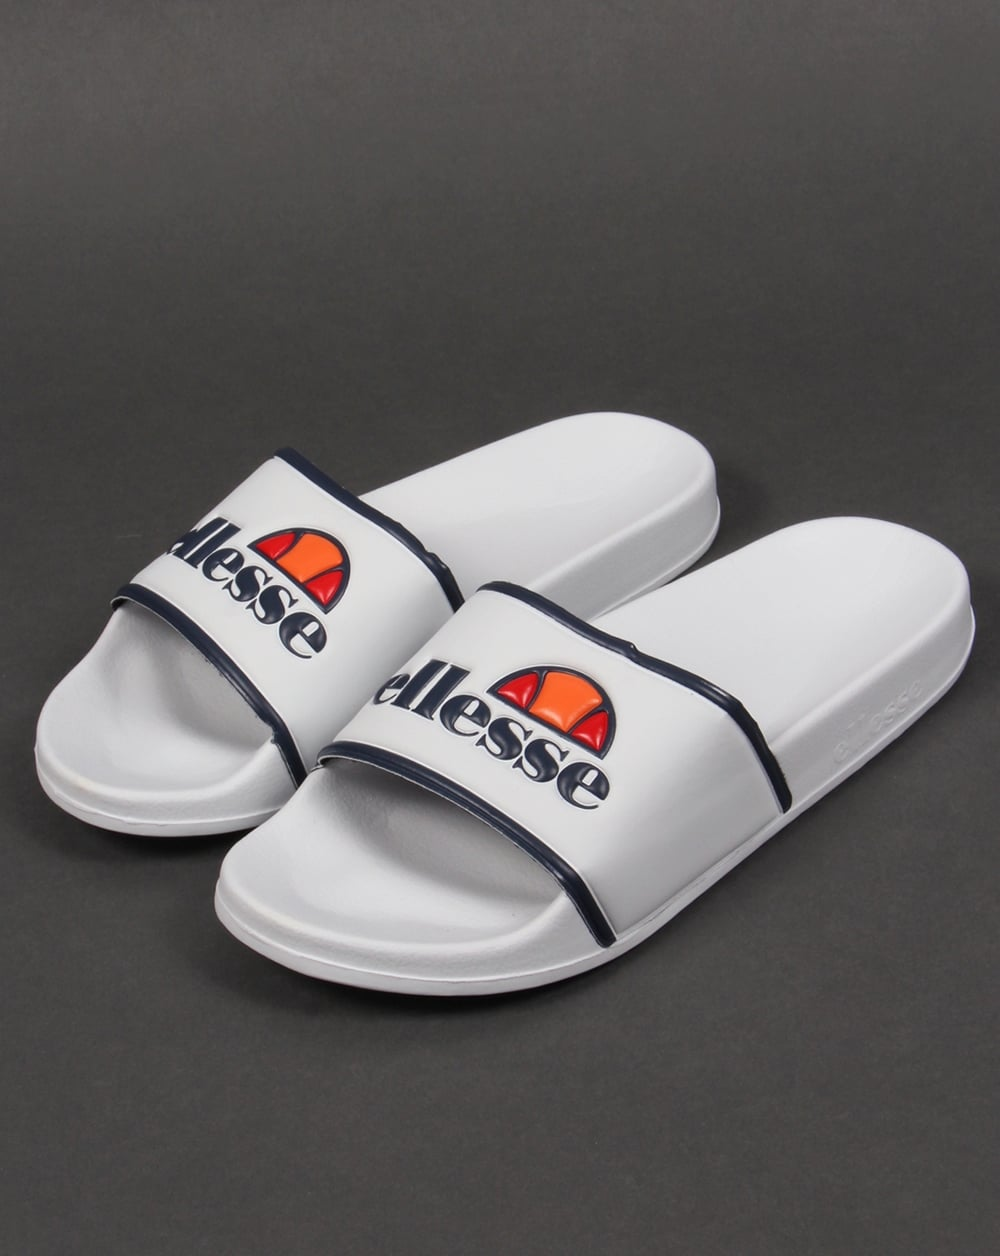 Ellesse Sliders White/Navy,sandals,pool,flip flops